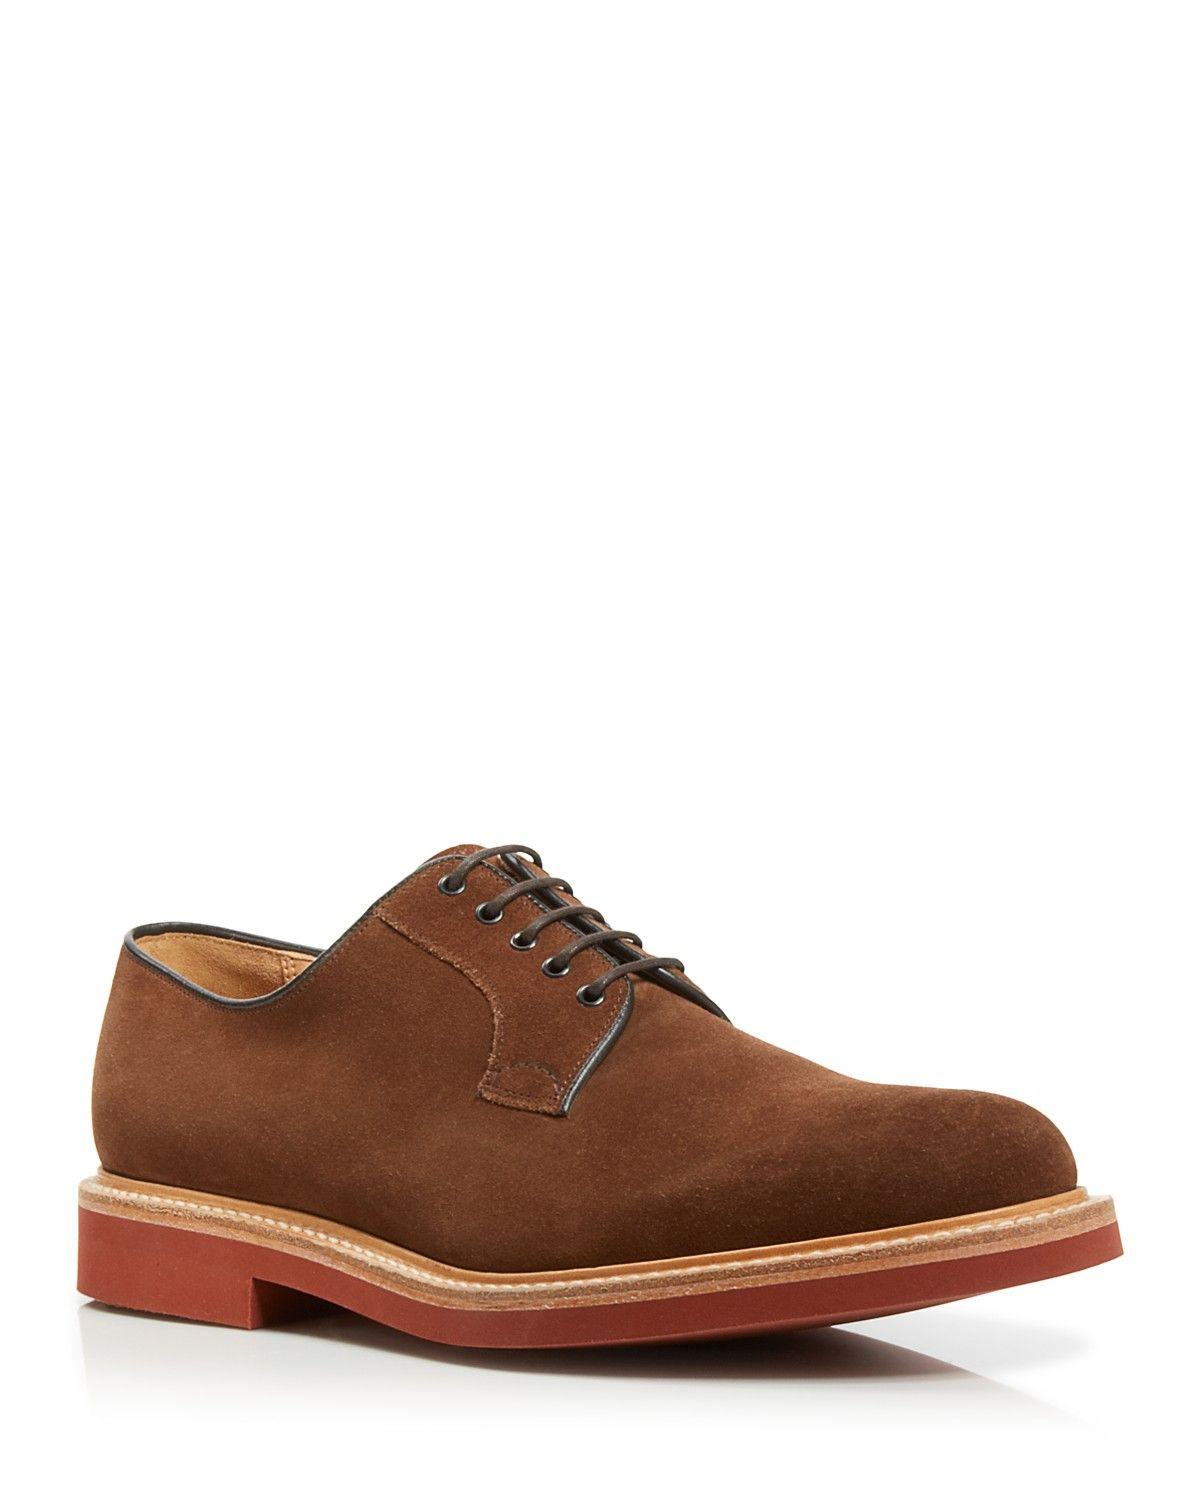 5678b176568db Church's Fulbeck Oxfords | Eric footwear | Oxford shoes, Dress Shoes ...